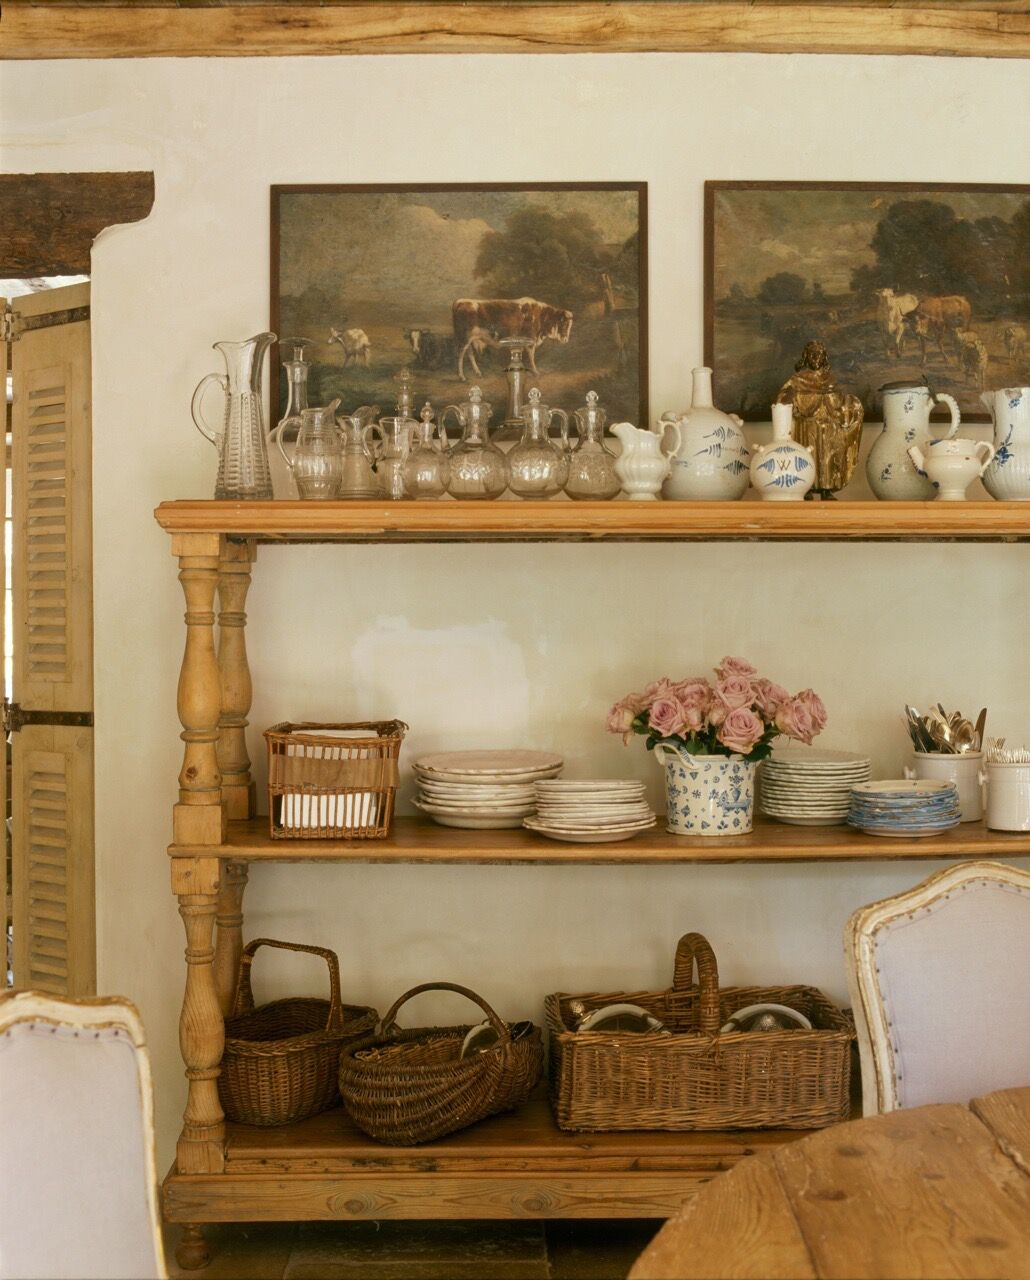 Chateau Domingue Timeless European Elegance and French farmhouse style converge in this house tour of founder Ruth Gay's home on Hello Lovely. Reclaimed stone, antique doors and mantels, and one of a kind architectural elements. #housetour #frenchcountry #frenchfarmhouse #europeanfarmhouse #chateaudomingue #rusticdecor #pamelapierce #elegantdecor #shelves